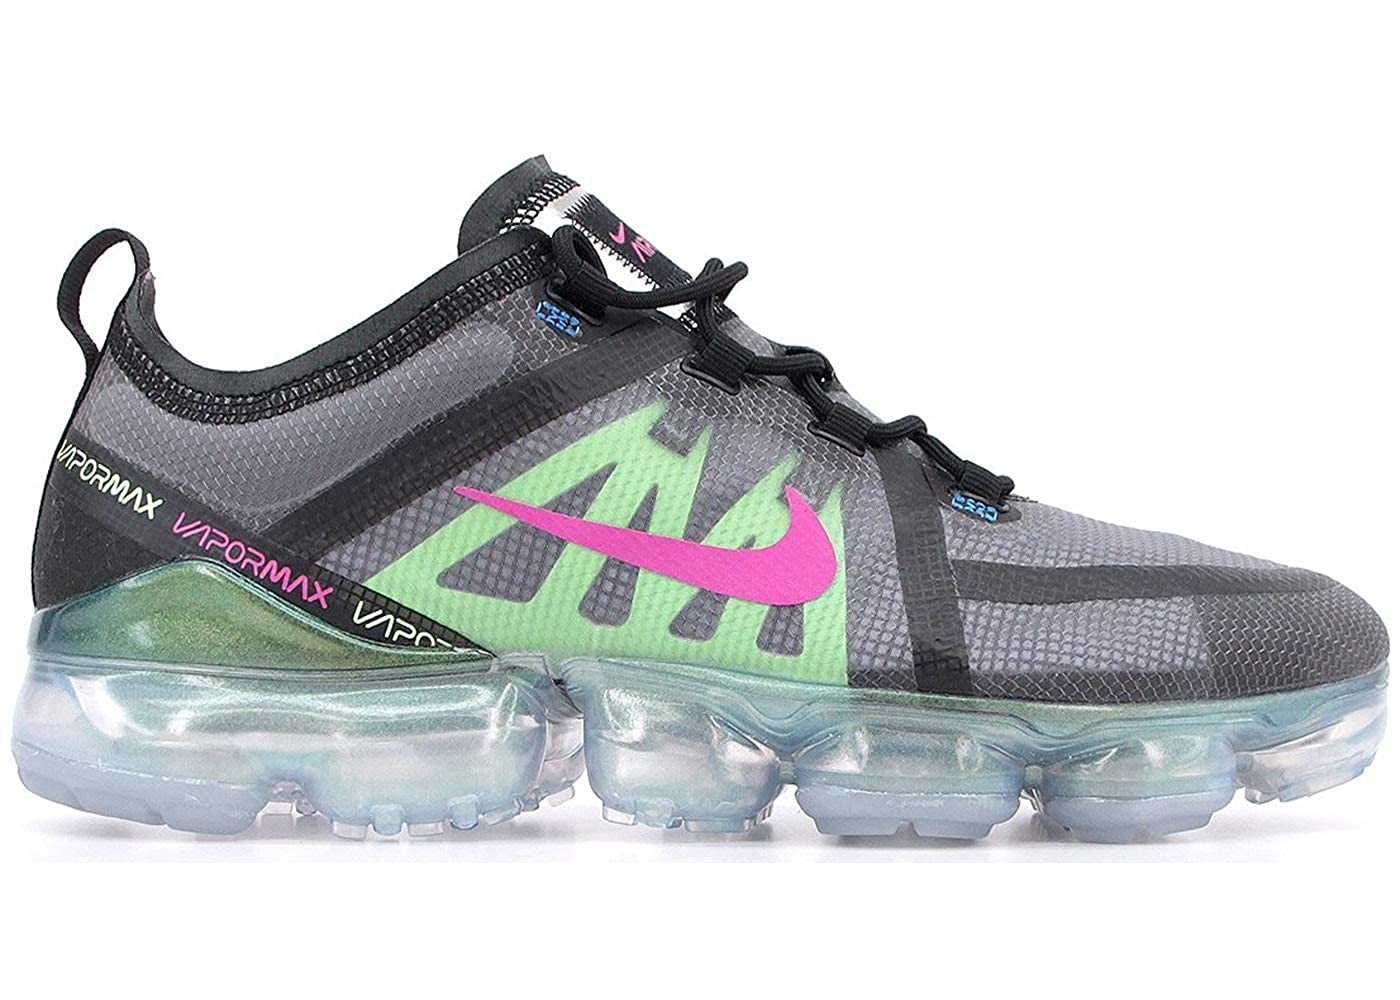 Nike Men's Air Vapormax 2019 Premium Mesh Cross Trainers Shoes